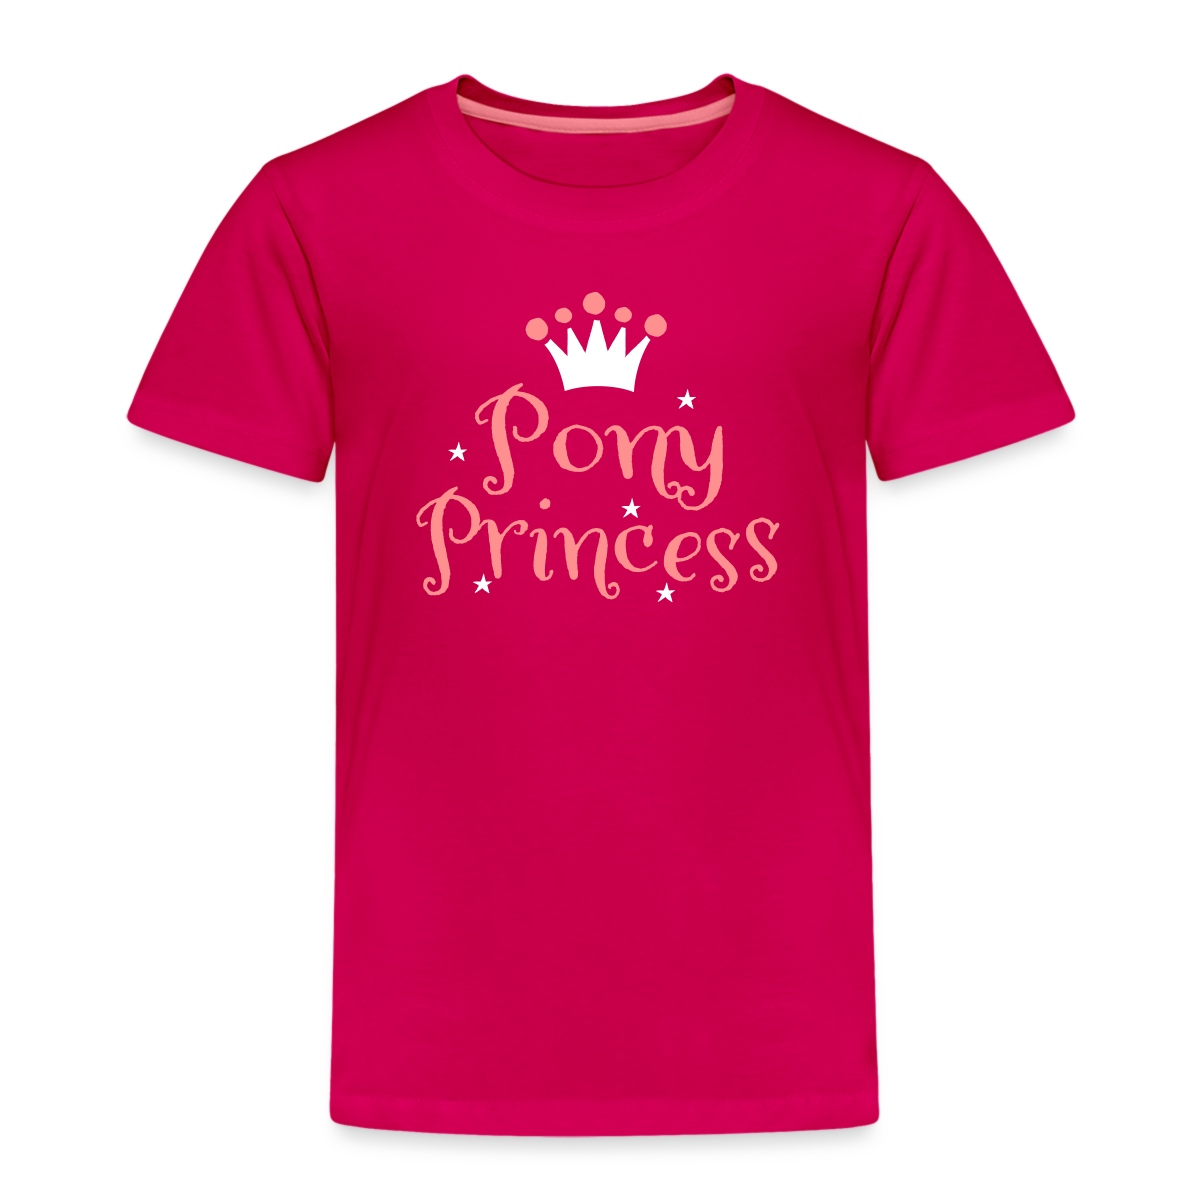 Pony Princess